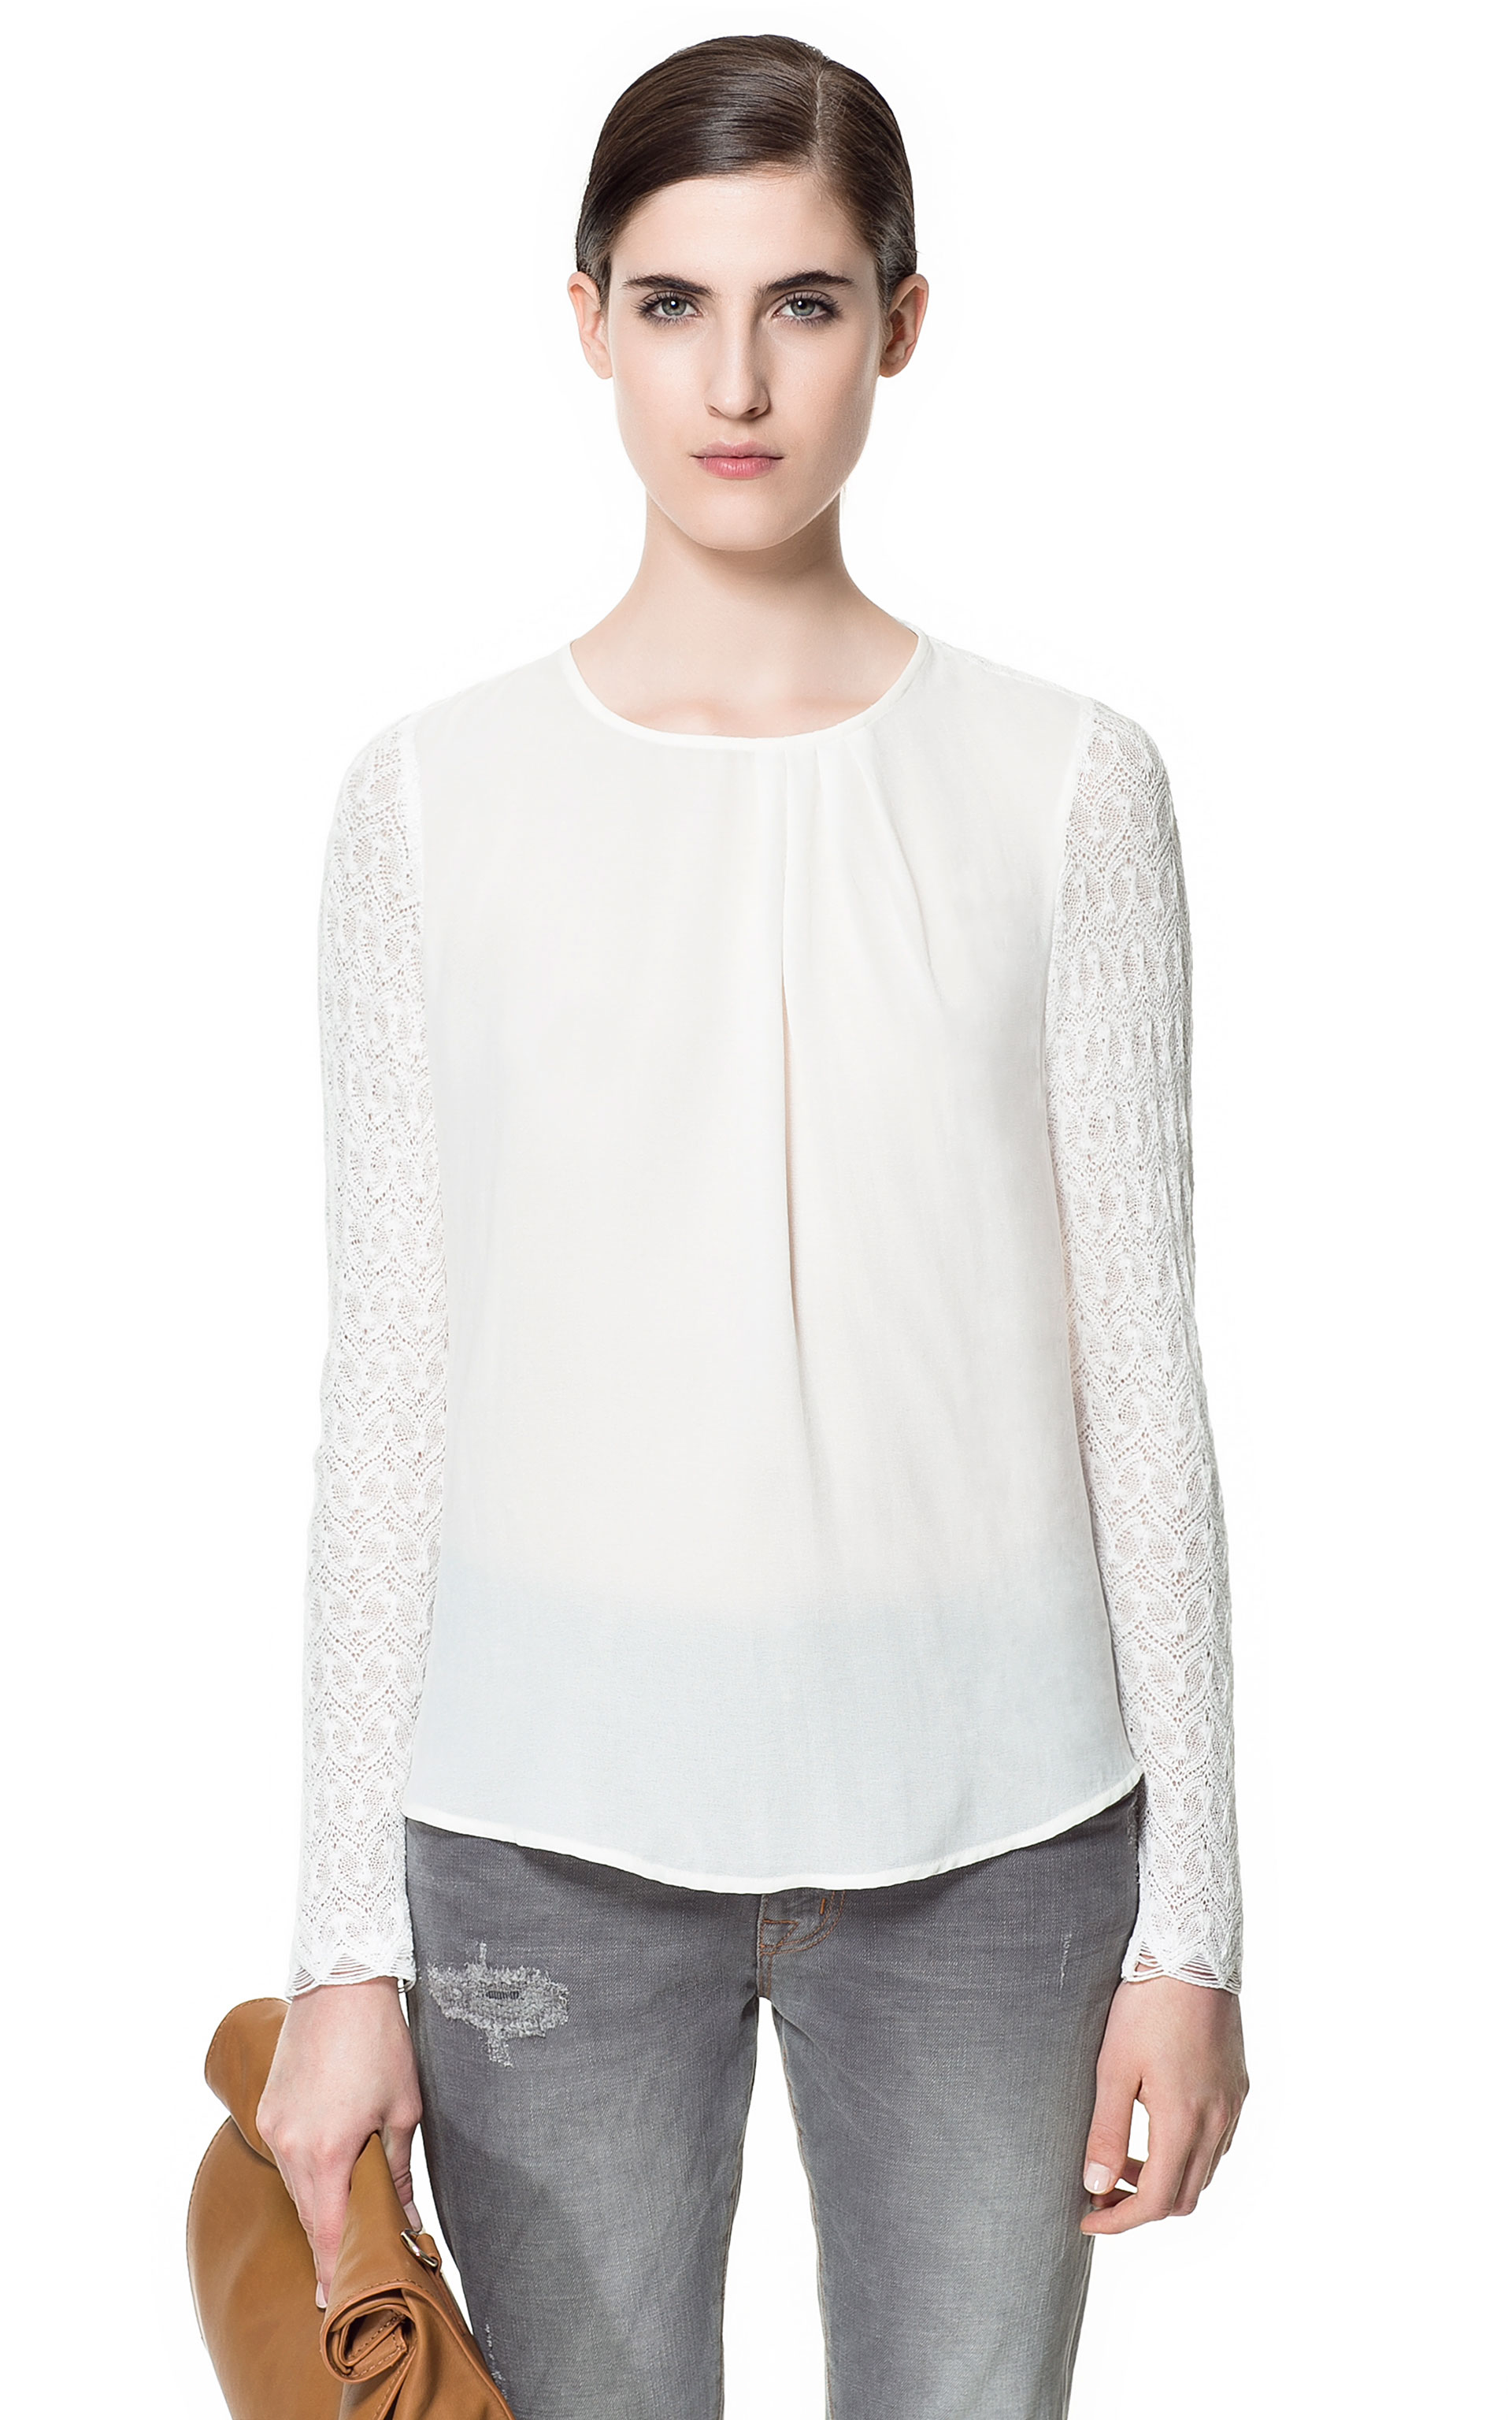 Zara Womens Blouse 7